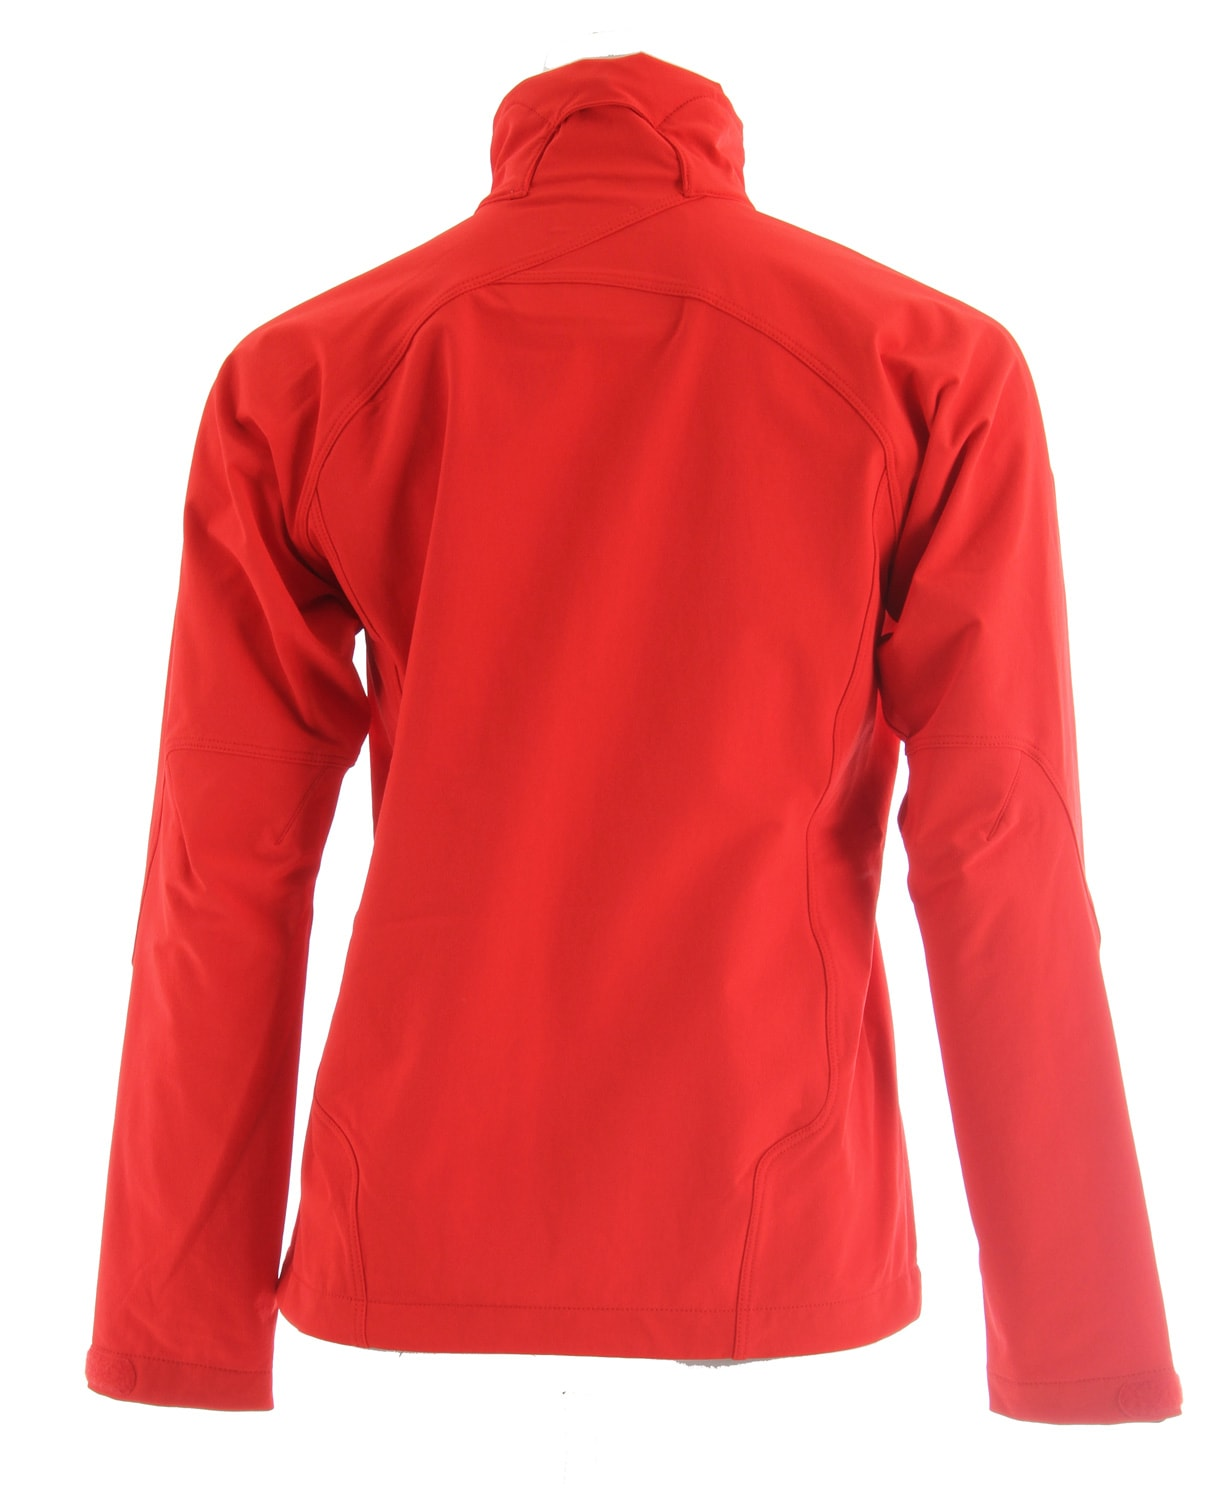 Outdoor clothing for women